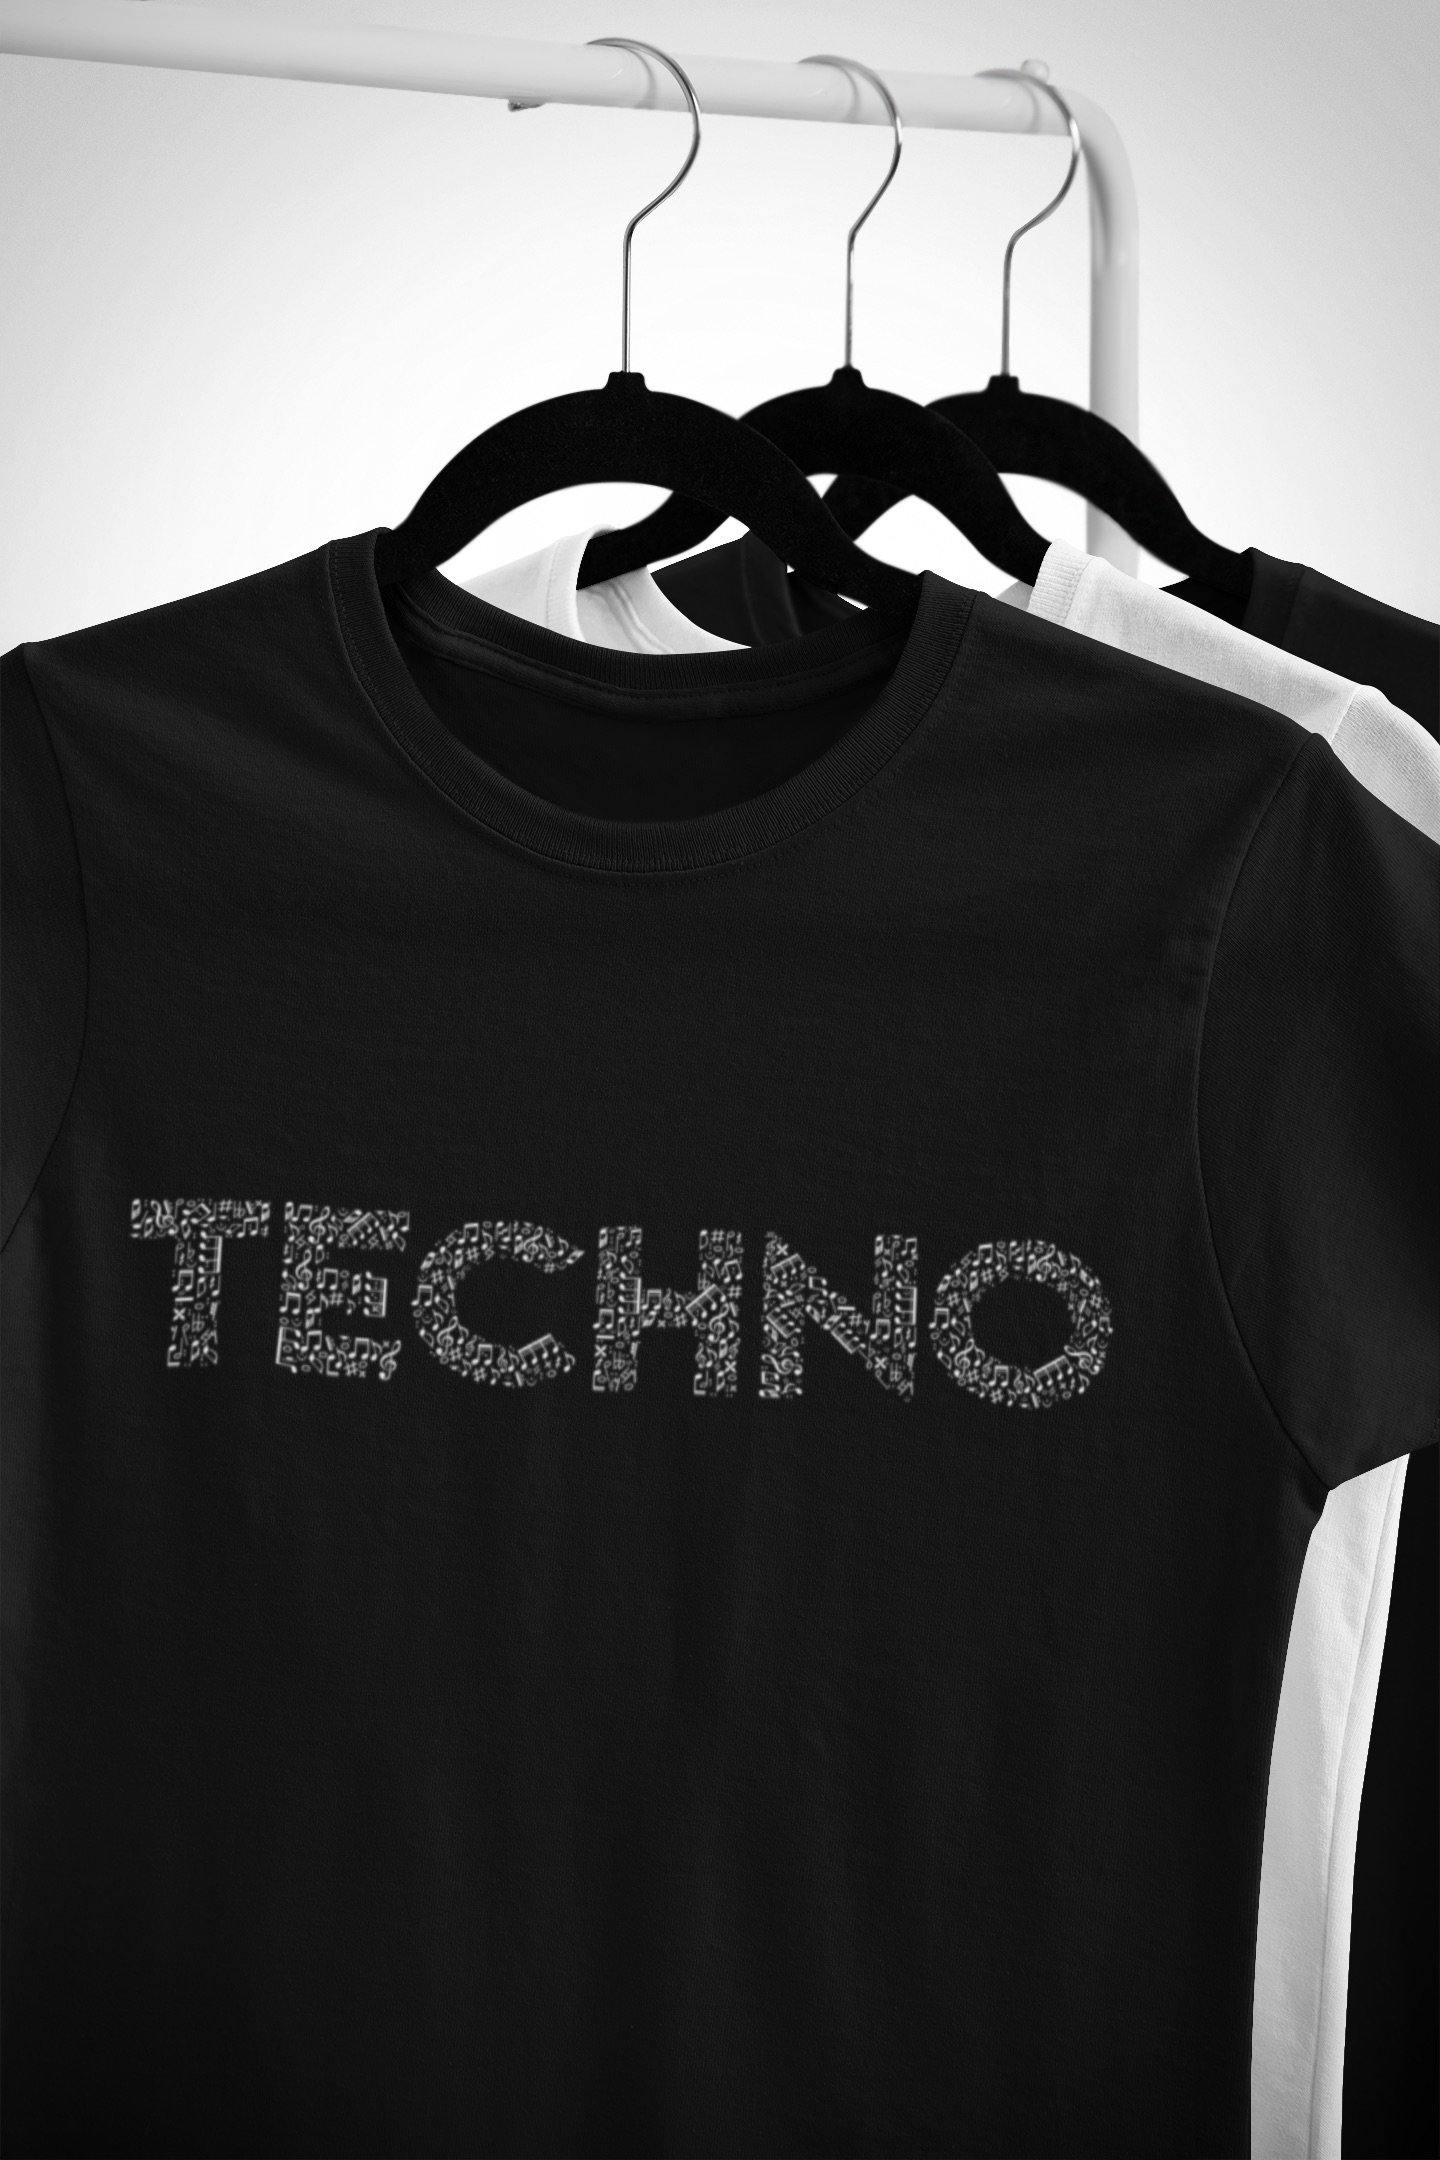 Softstyle Unisex T-Shirt Techno Music Notes